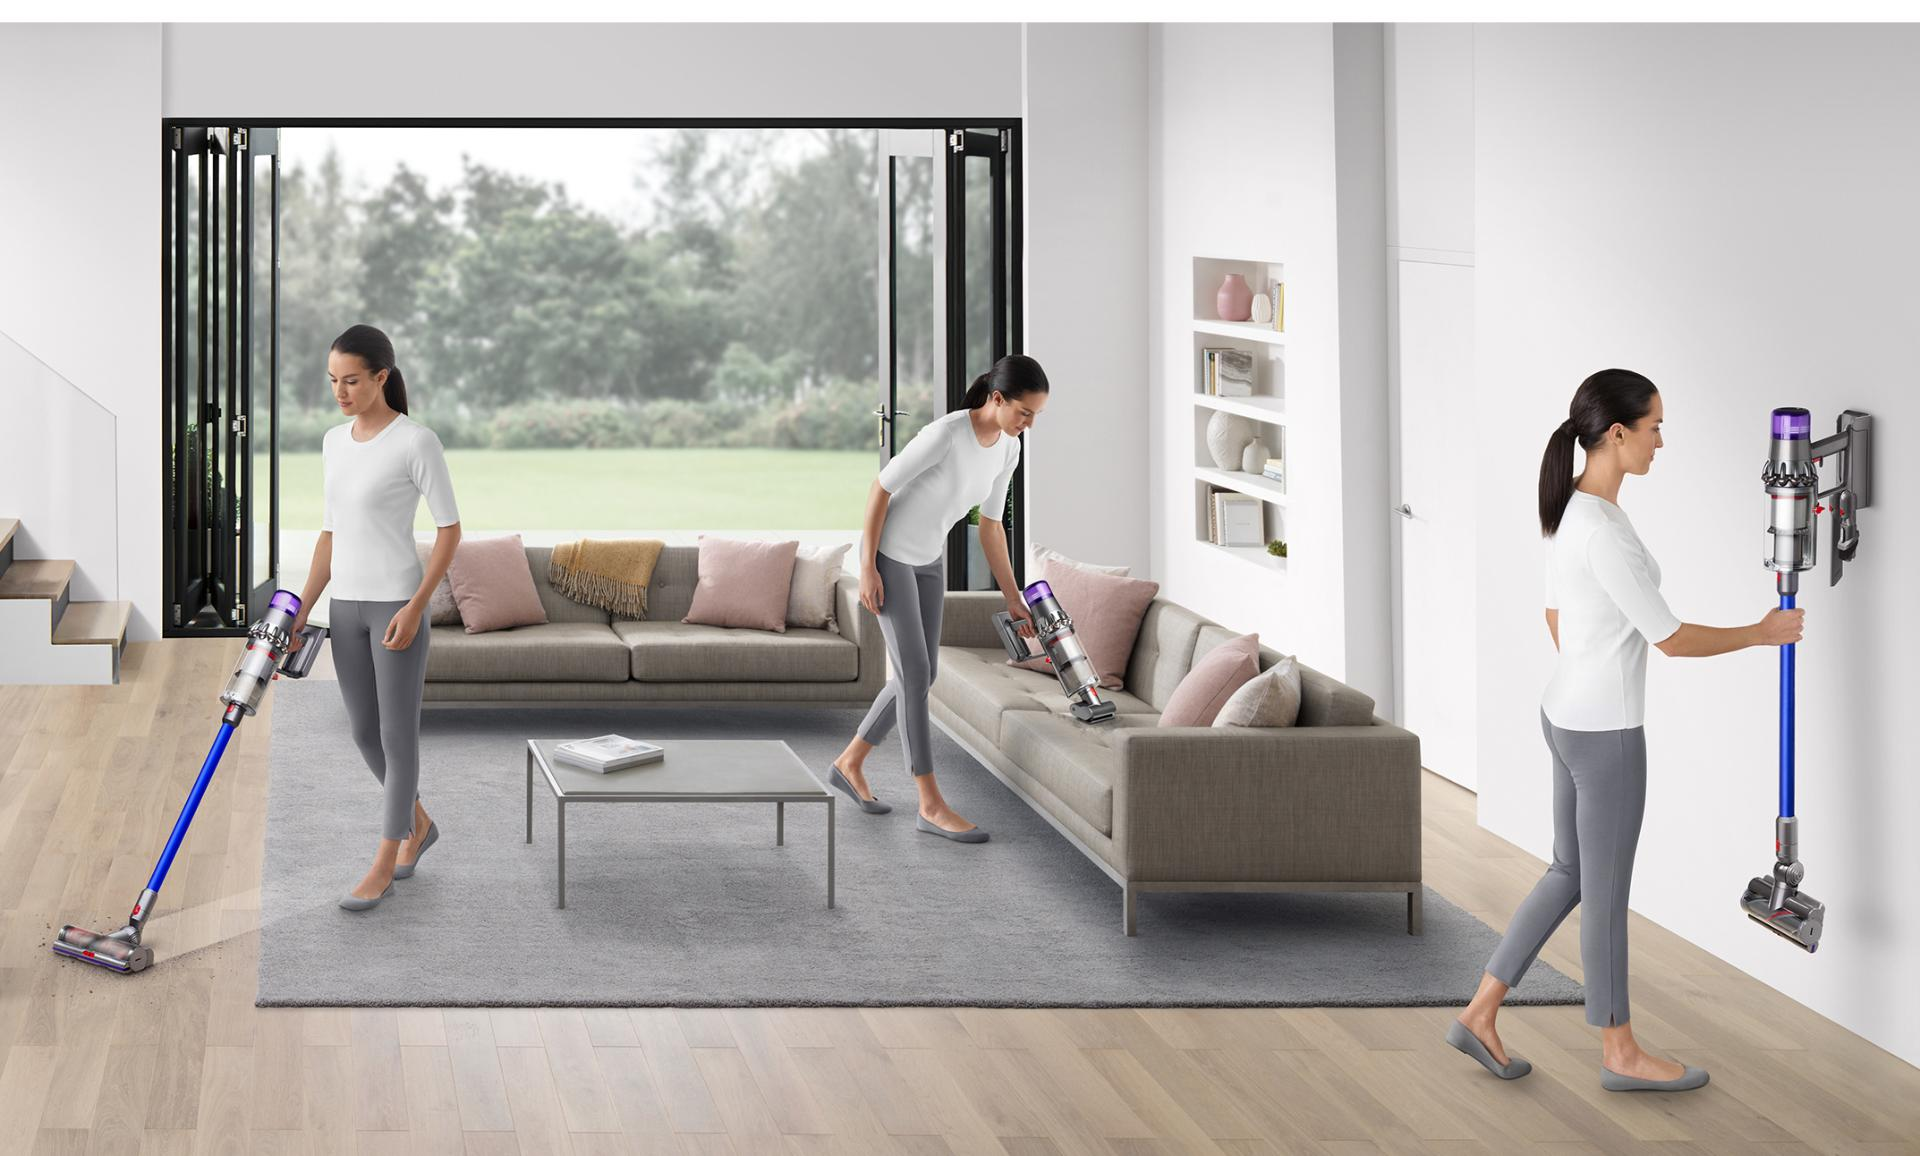 Three women using the Dyson V11 around living space